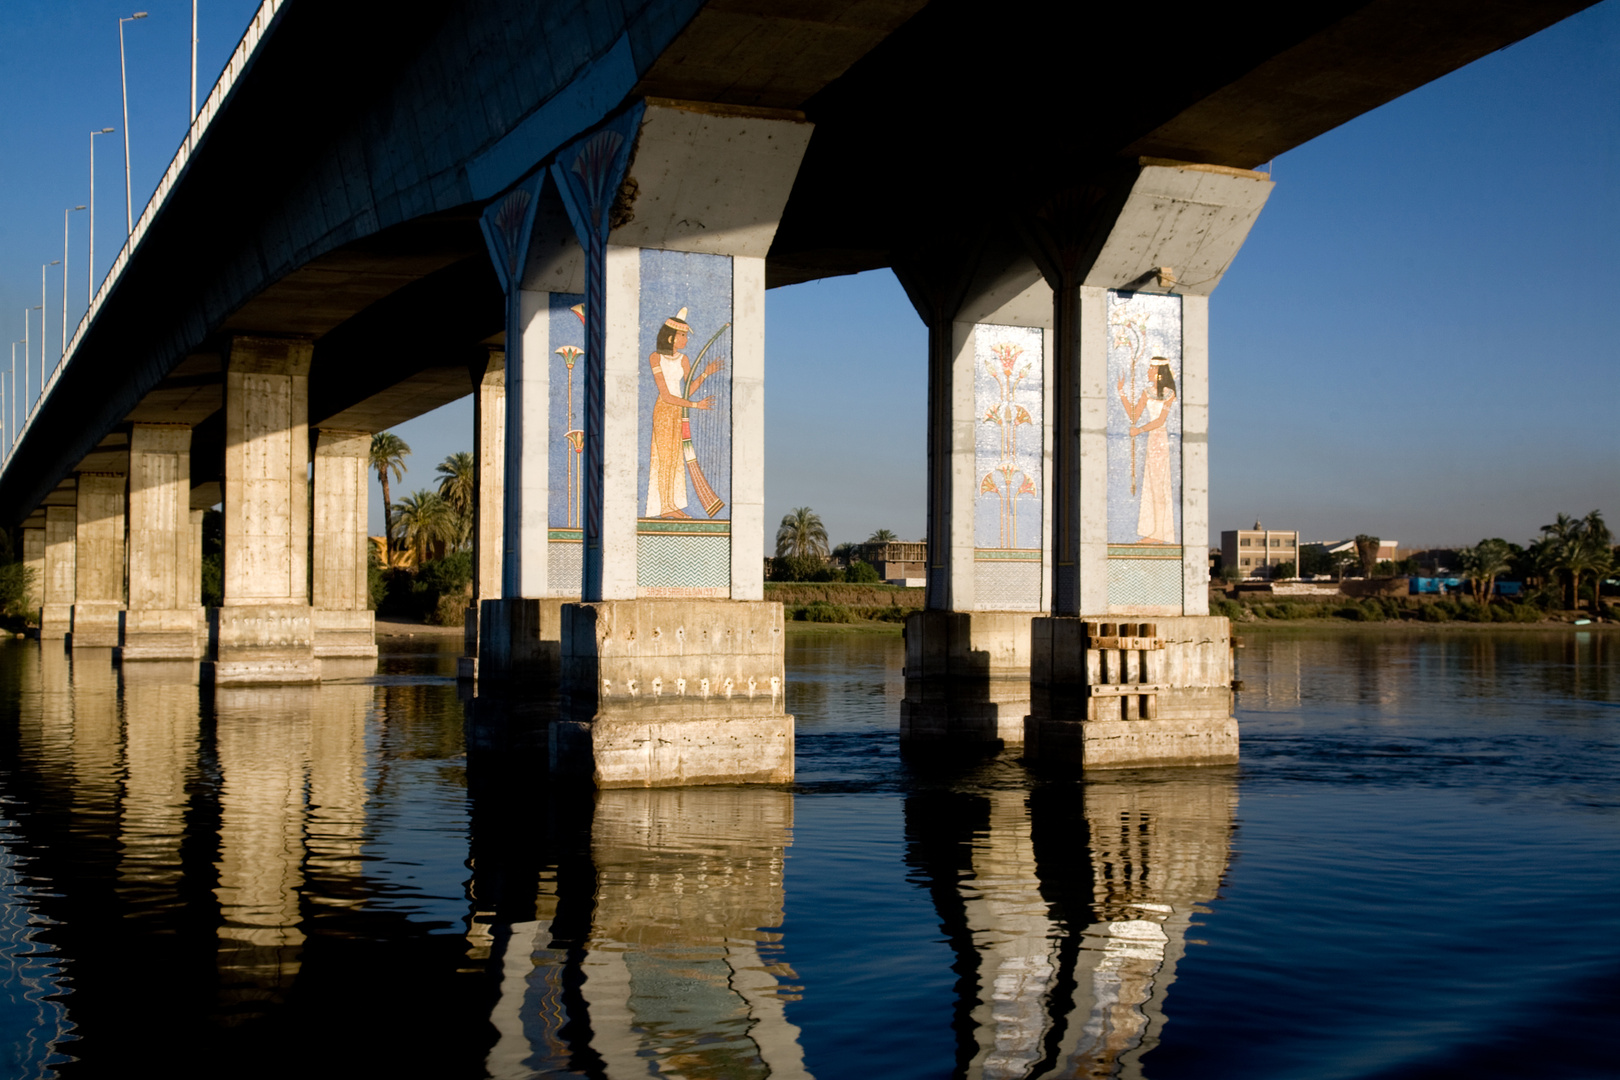 Bridge over troubled water - The Nile near Luxor